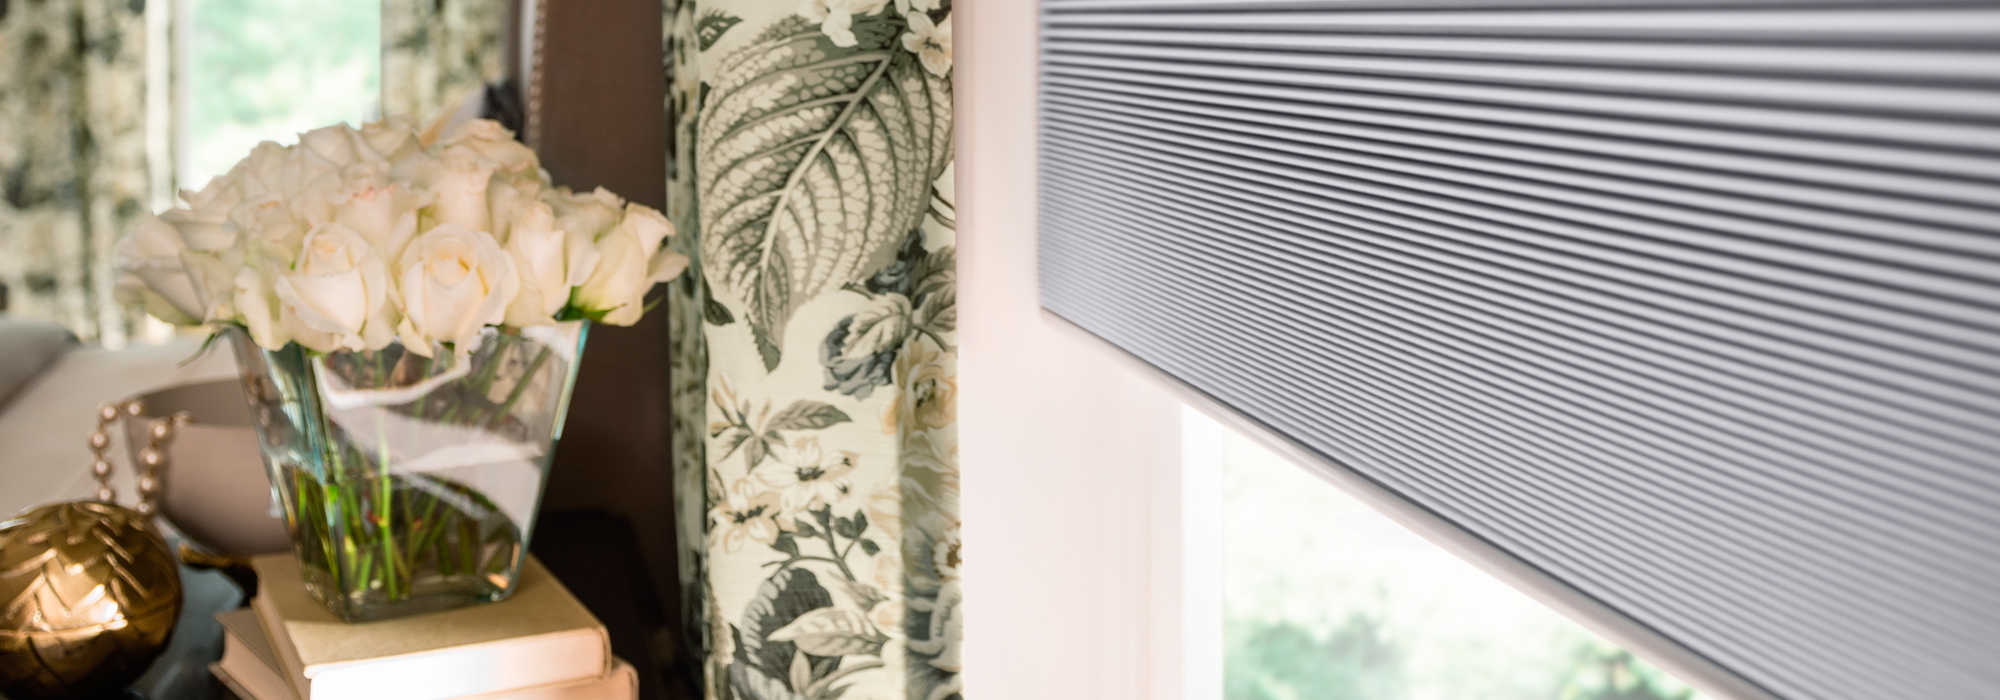 Get Cellular Shades by Graber at The Blinds Man